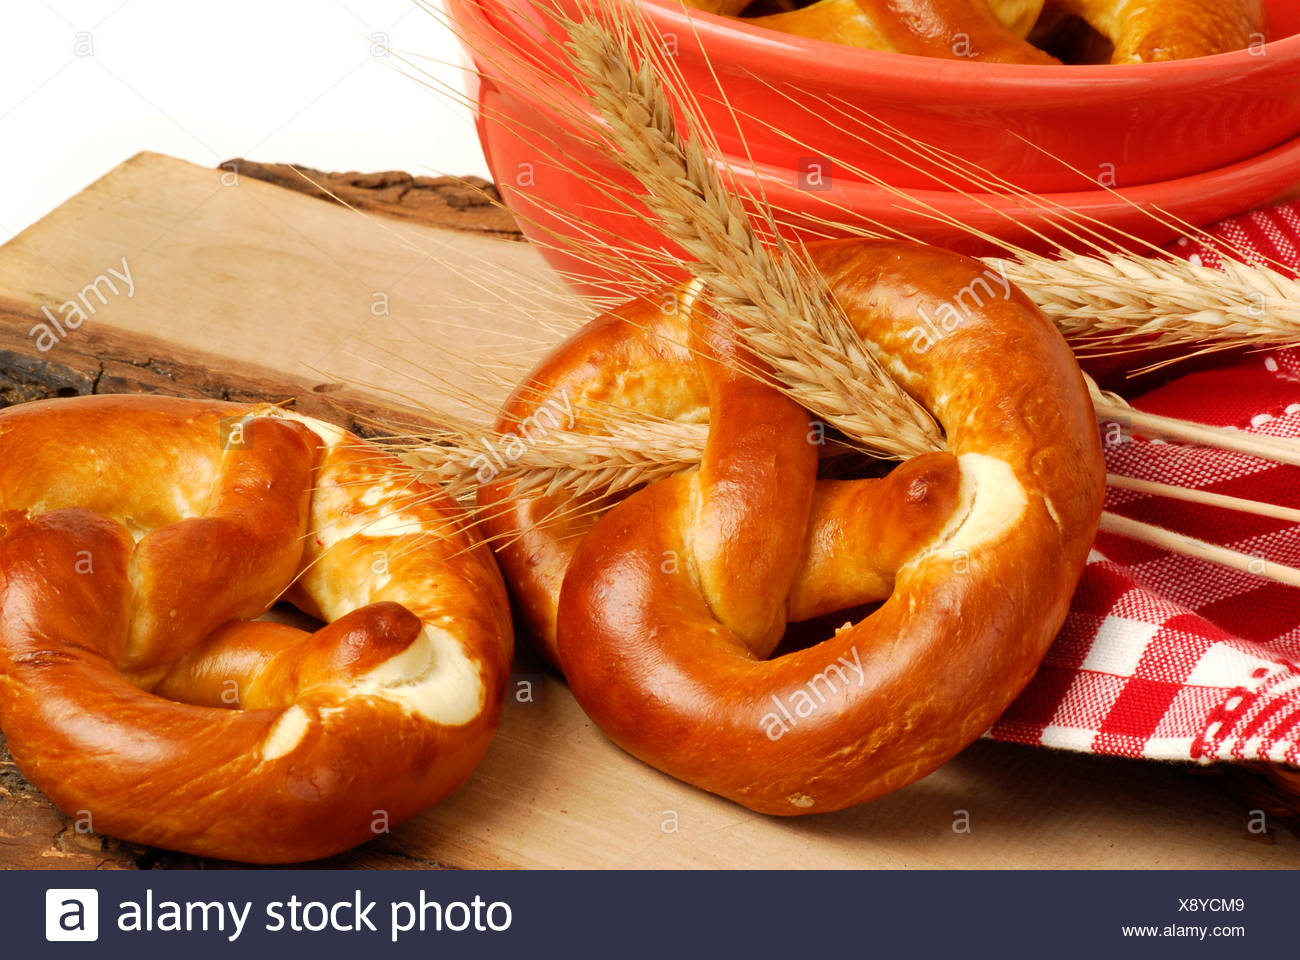 Pretzels and grain ears - Stock Image